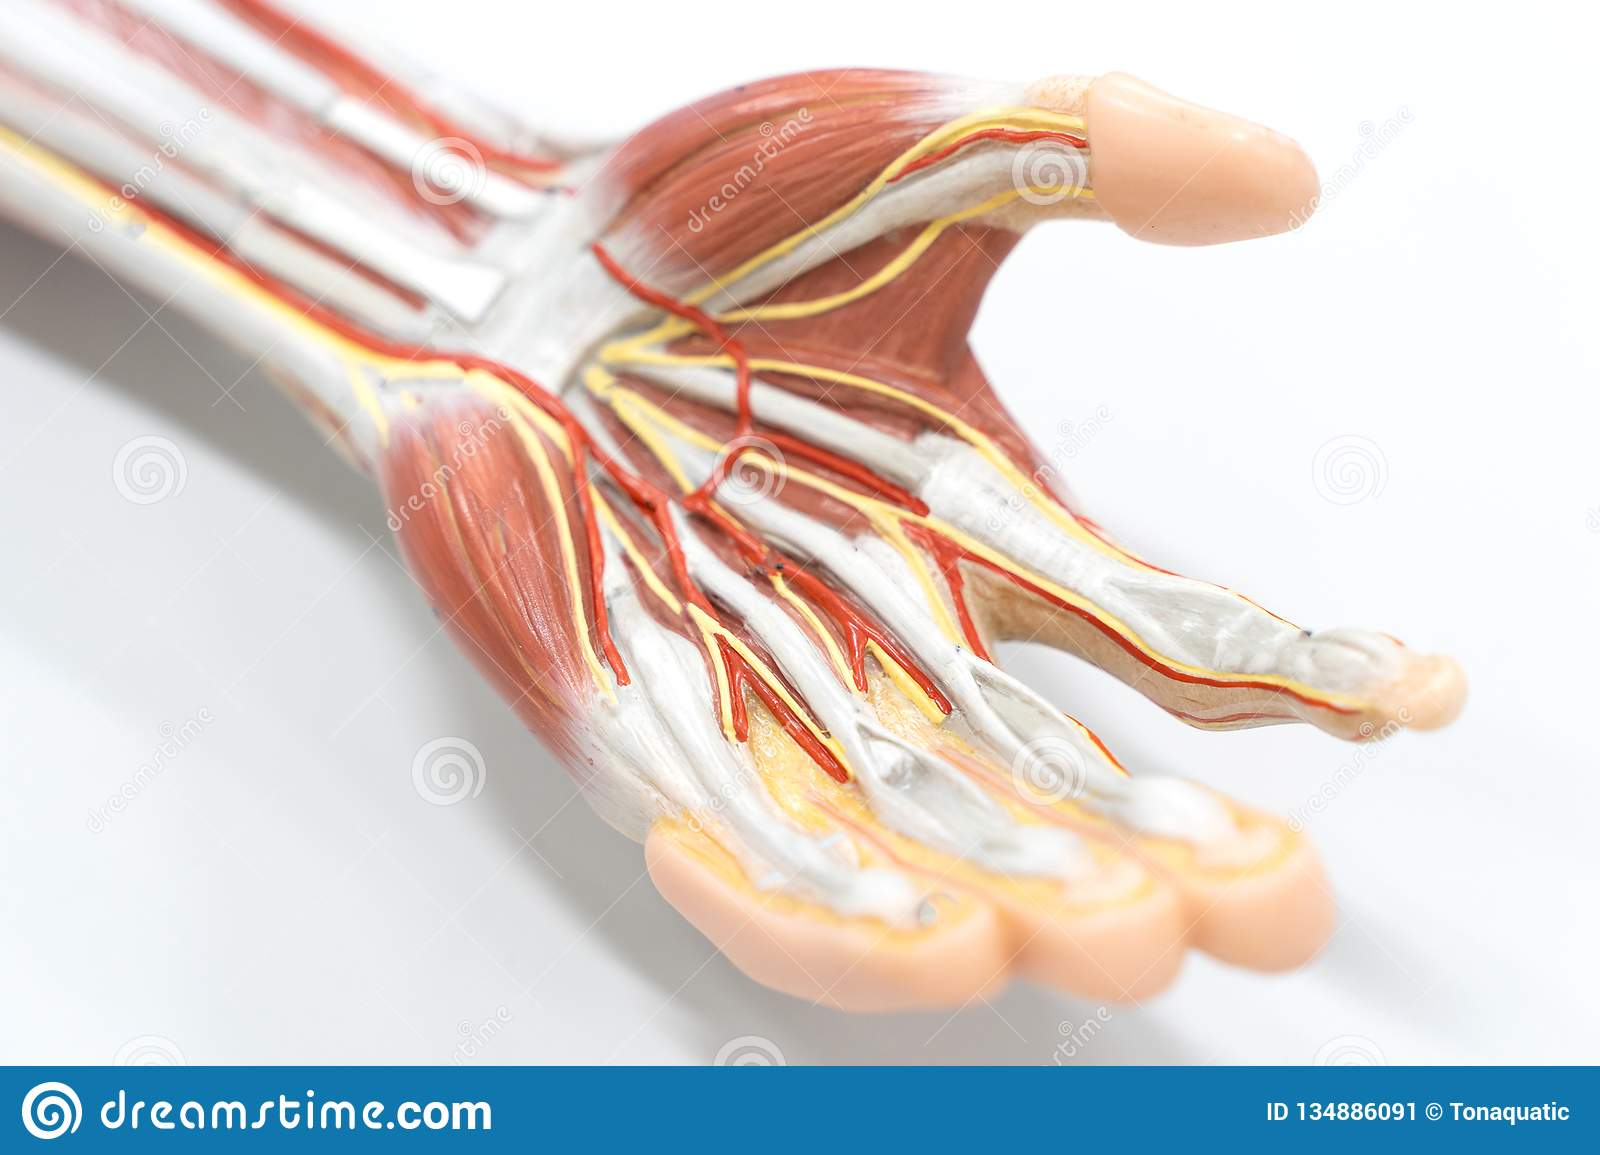 Muscles Of The Palm Hand For Anatomy Education Stock Image Image